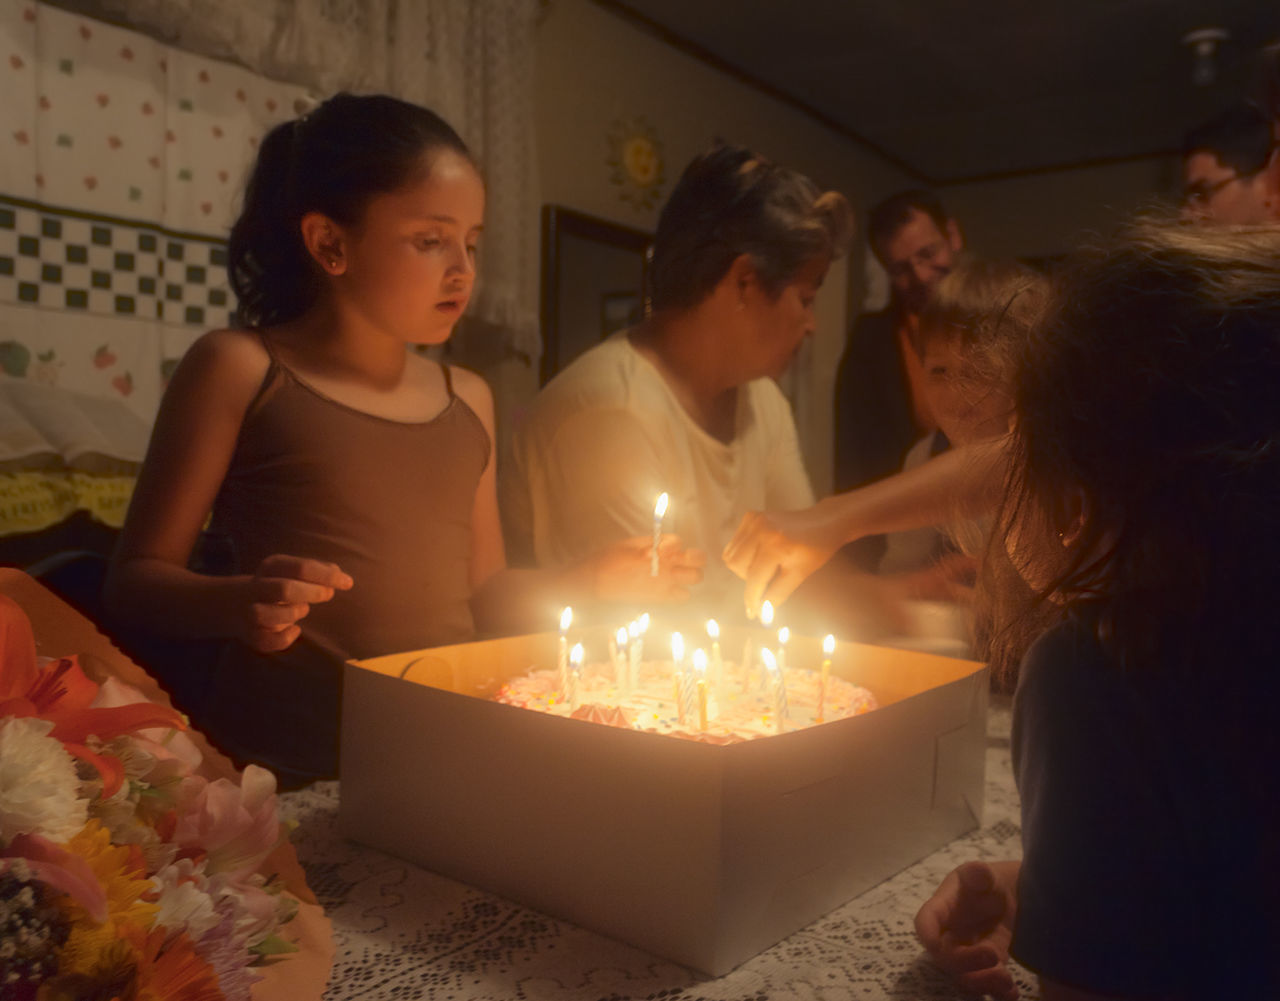 Children and adults enjoying birthday Party in San Jose, Costa Rica Anniversary Birthday Birthday Candles Birthday Party Burning Cake Candle Celebration Child Childhood Costa Rica Domestic Life Family Family Family With Three Children Family❤ Flame Girls Illuminated Indoors  Mother People San Jose Togetherness Unhealthy Eating